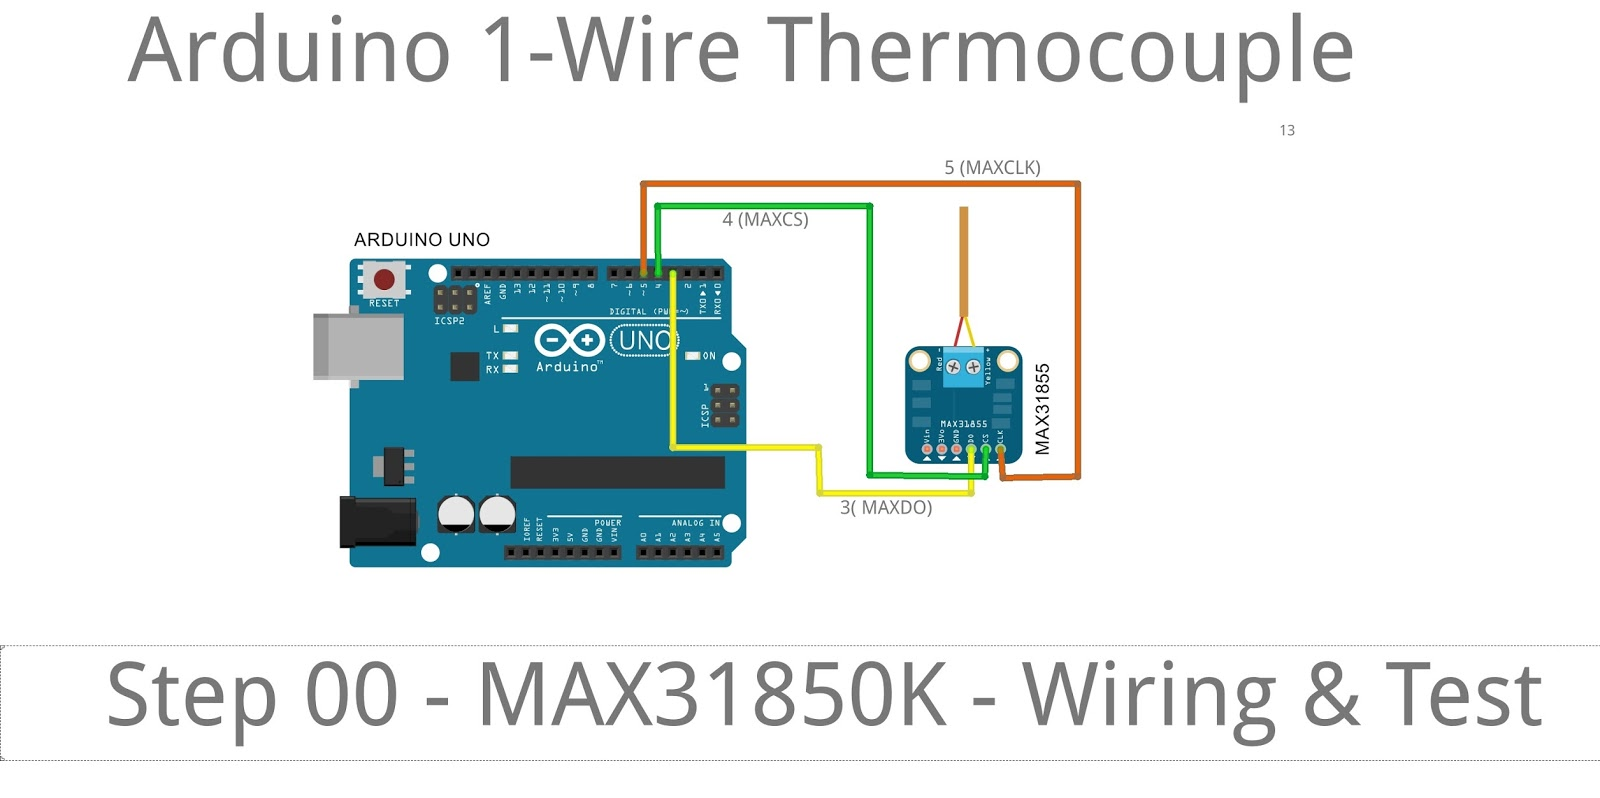 small resolution of max31855 is an spi interface thermocouple amplifier pinout do 3 ckl 4 cs 5 3v3 gnd here is the schematic